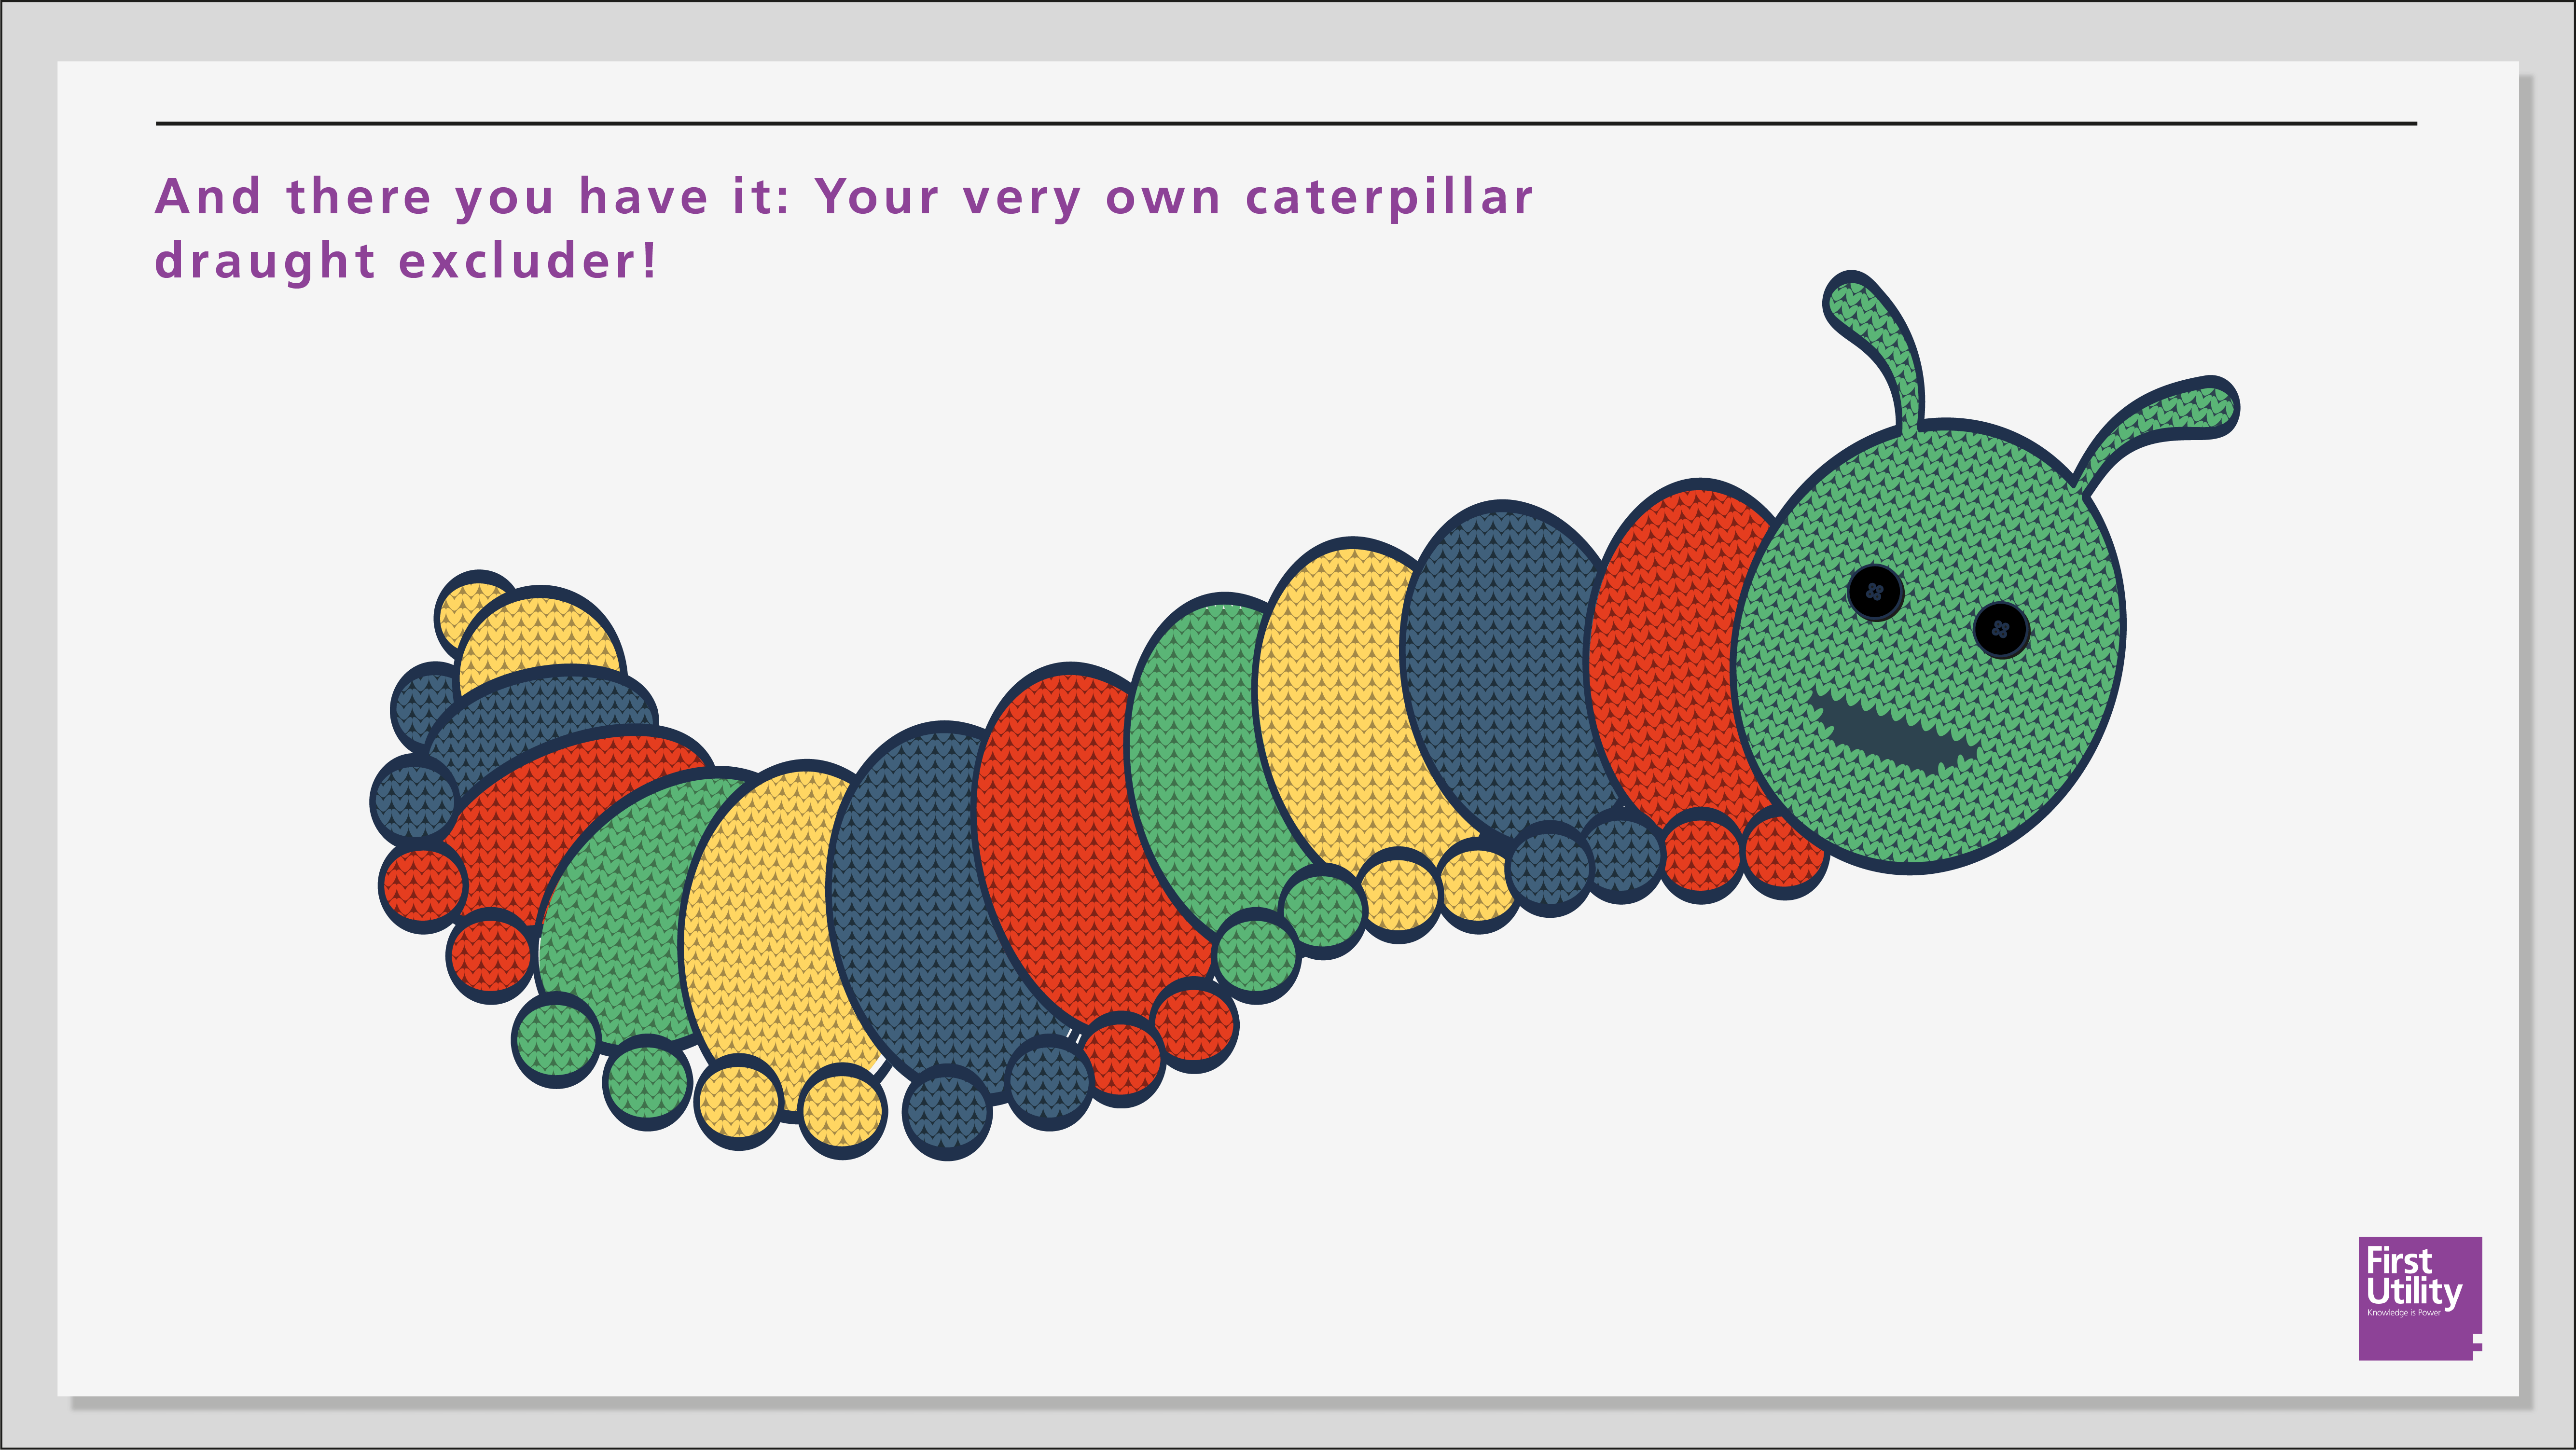 And there you have it! | Make Your Own Caterpillar Draught Excluder